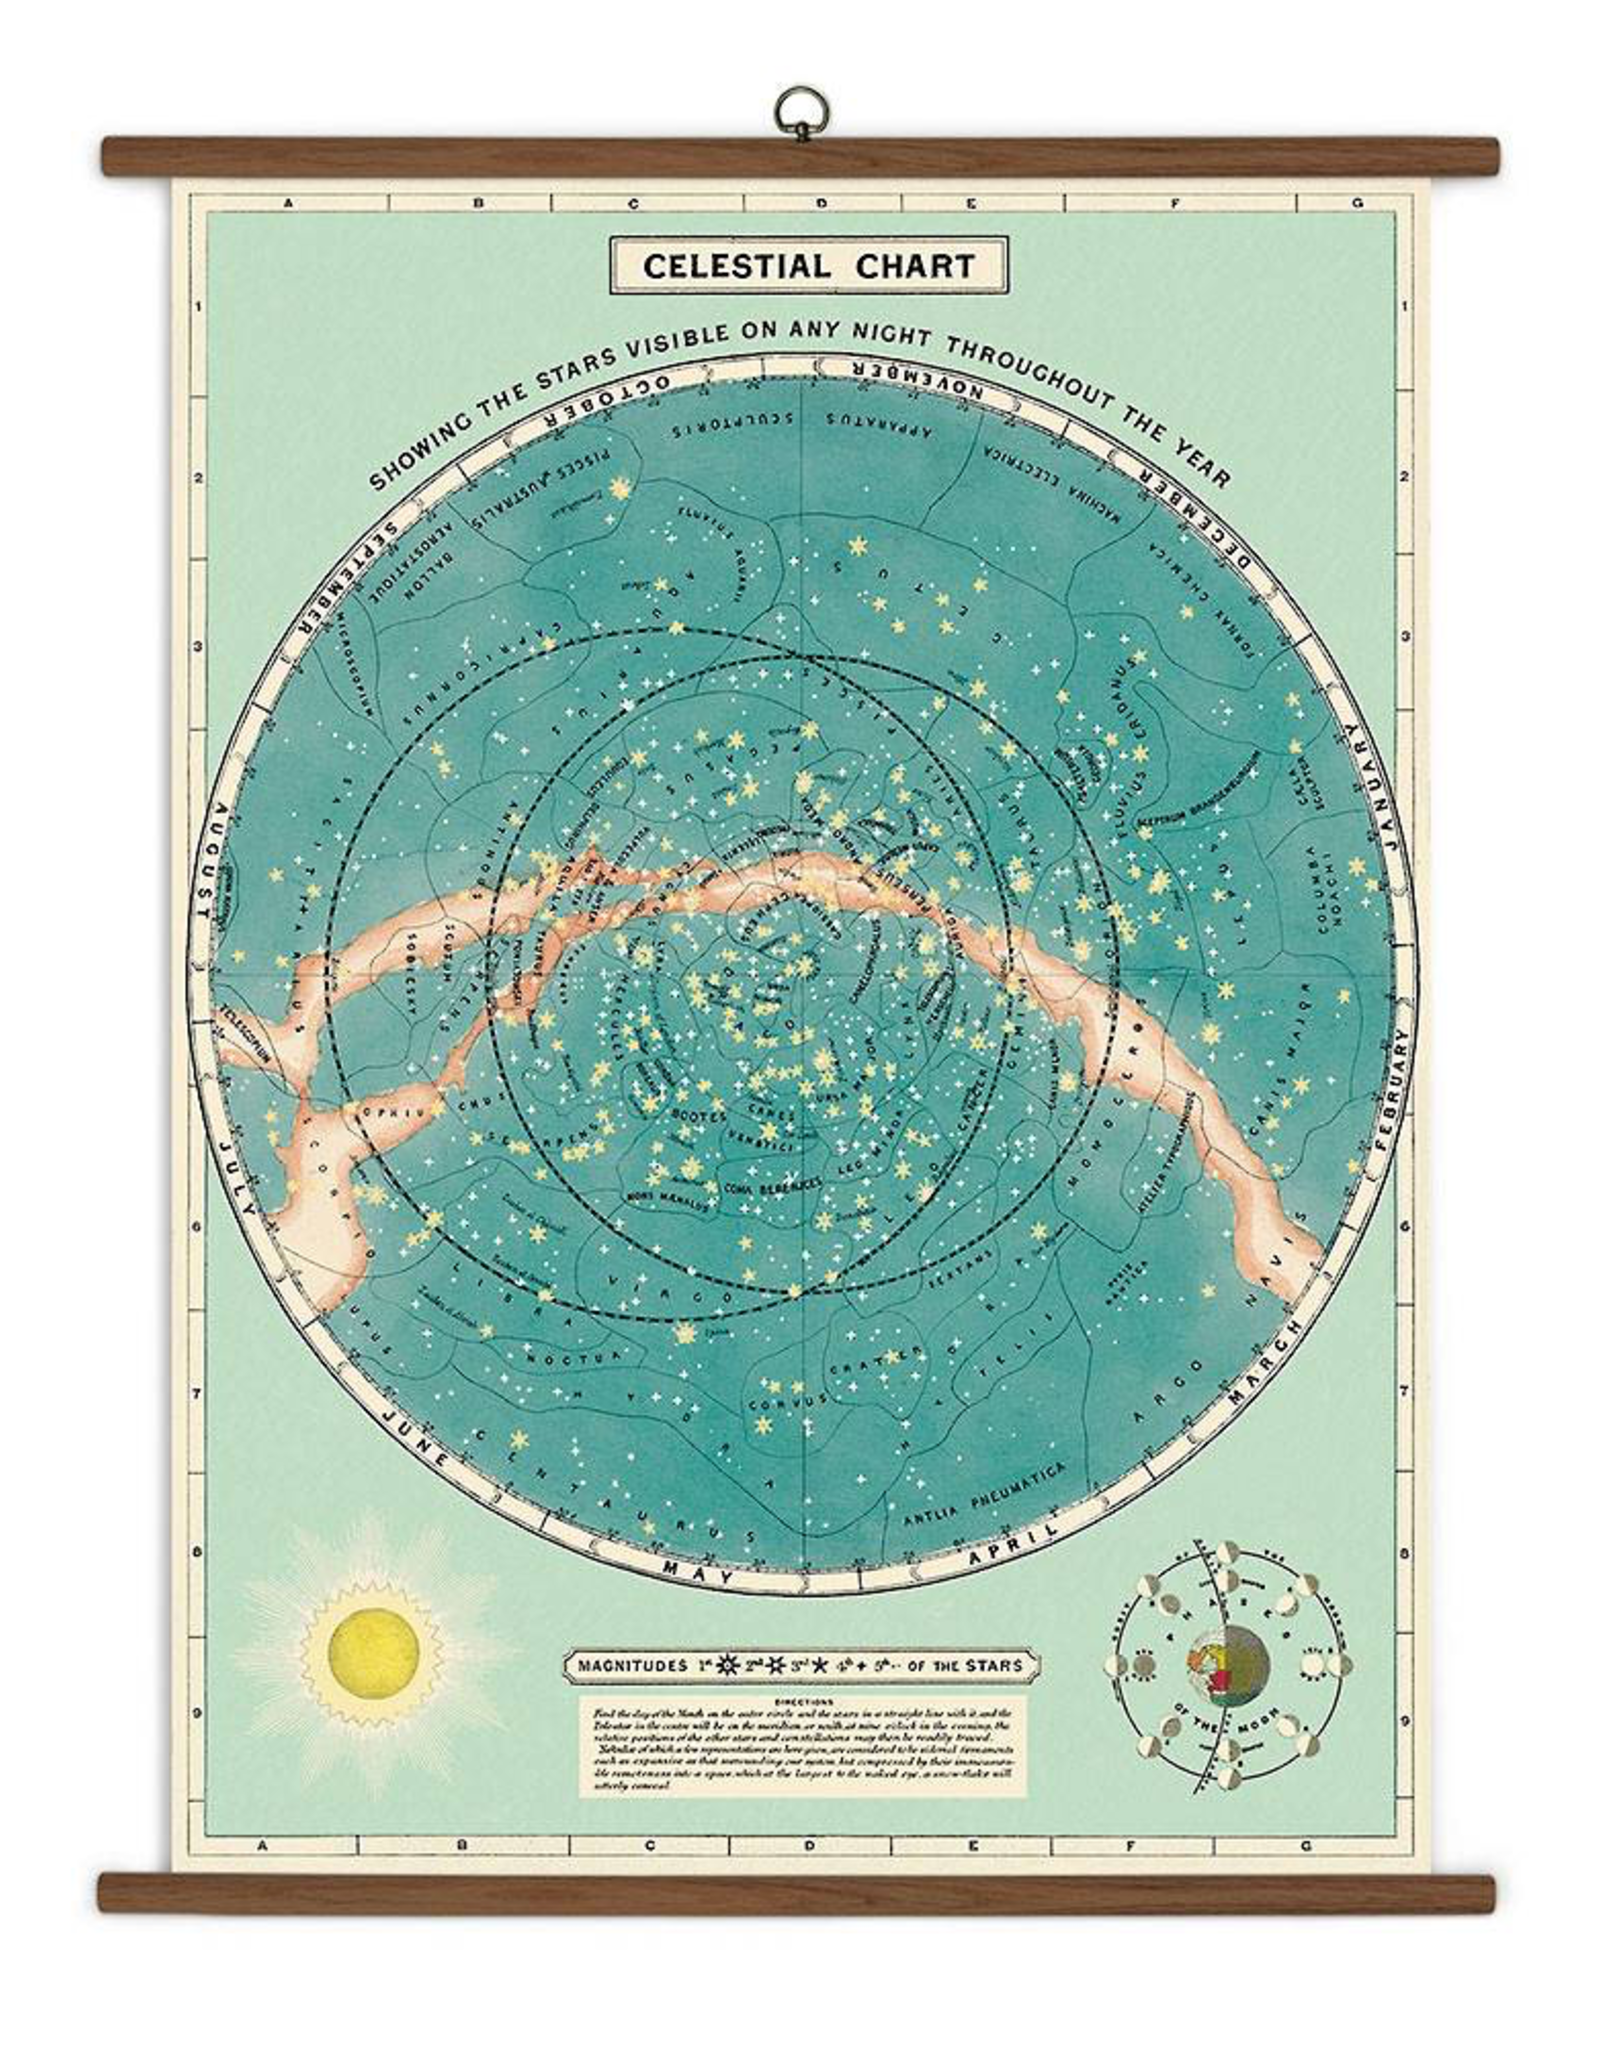 Vintage Style School Chart - Celestial